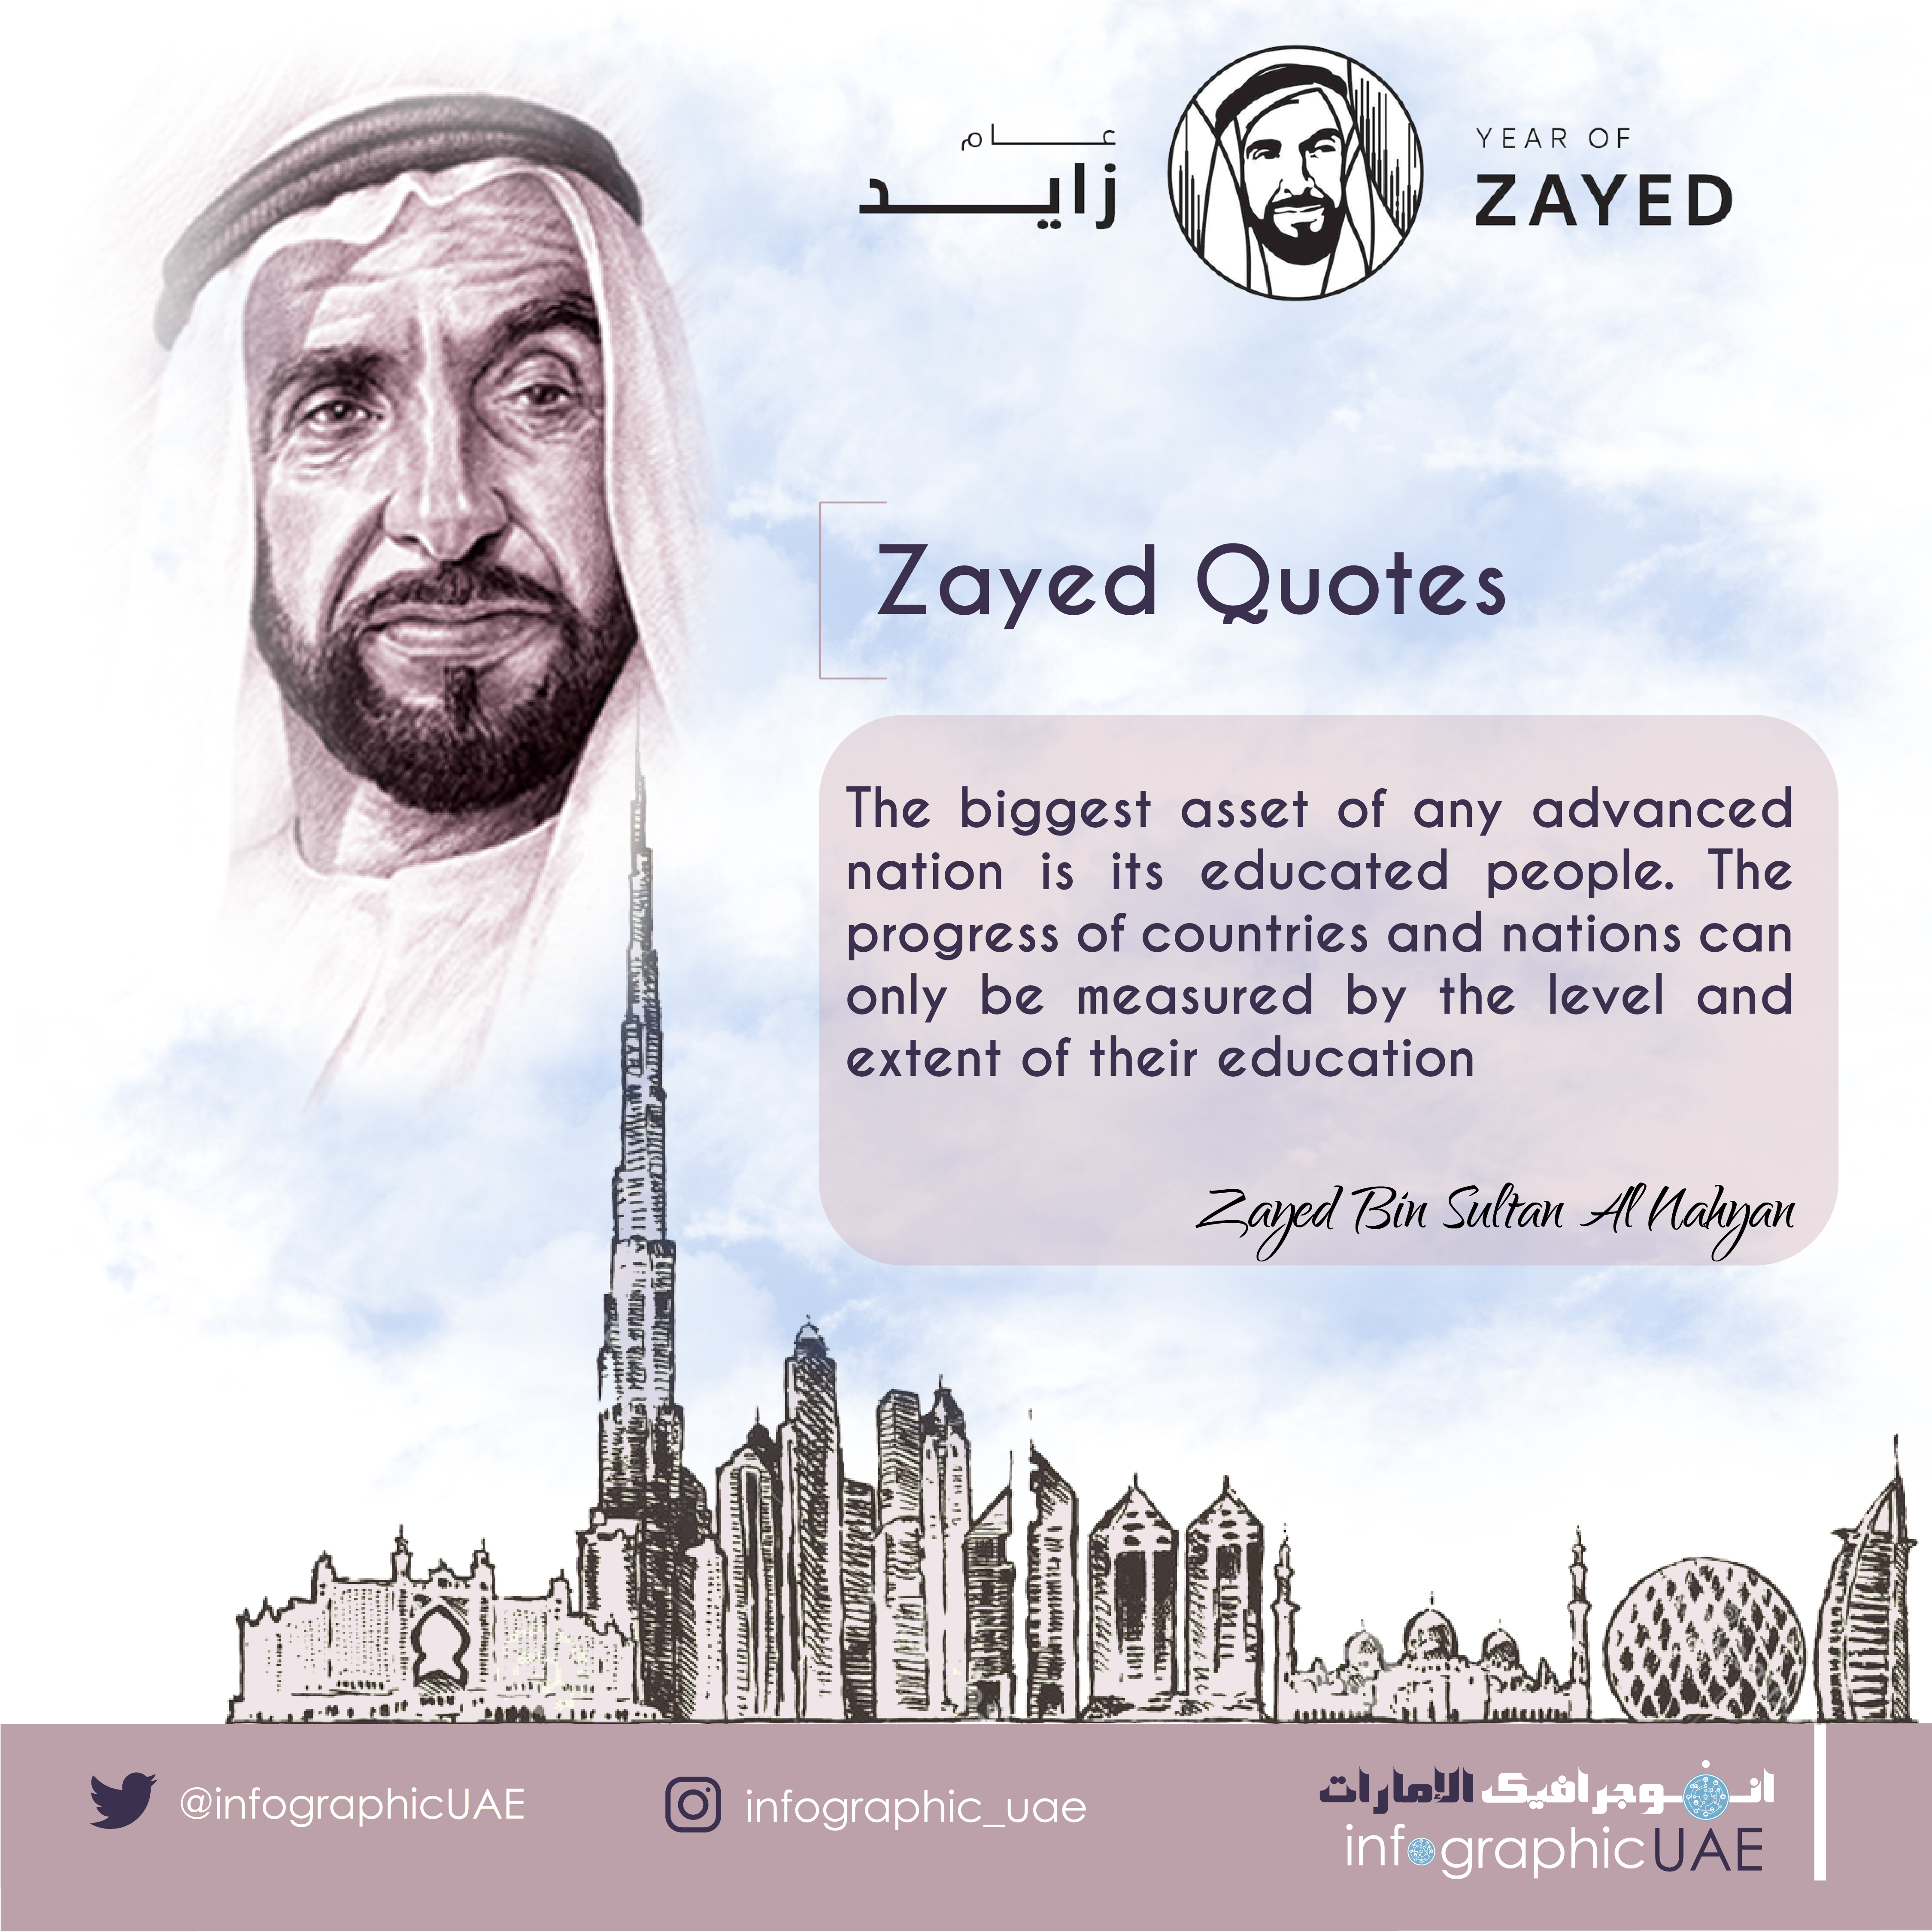 Uae National Day Quotes: Zayed Quotes #yearofzayed